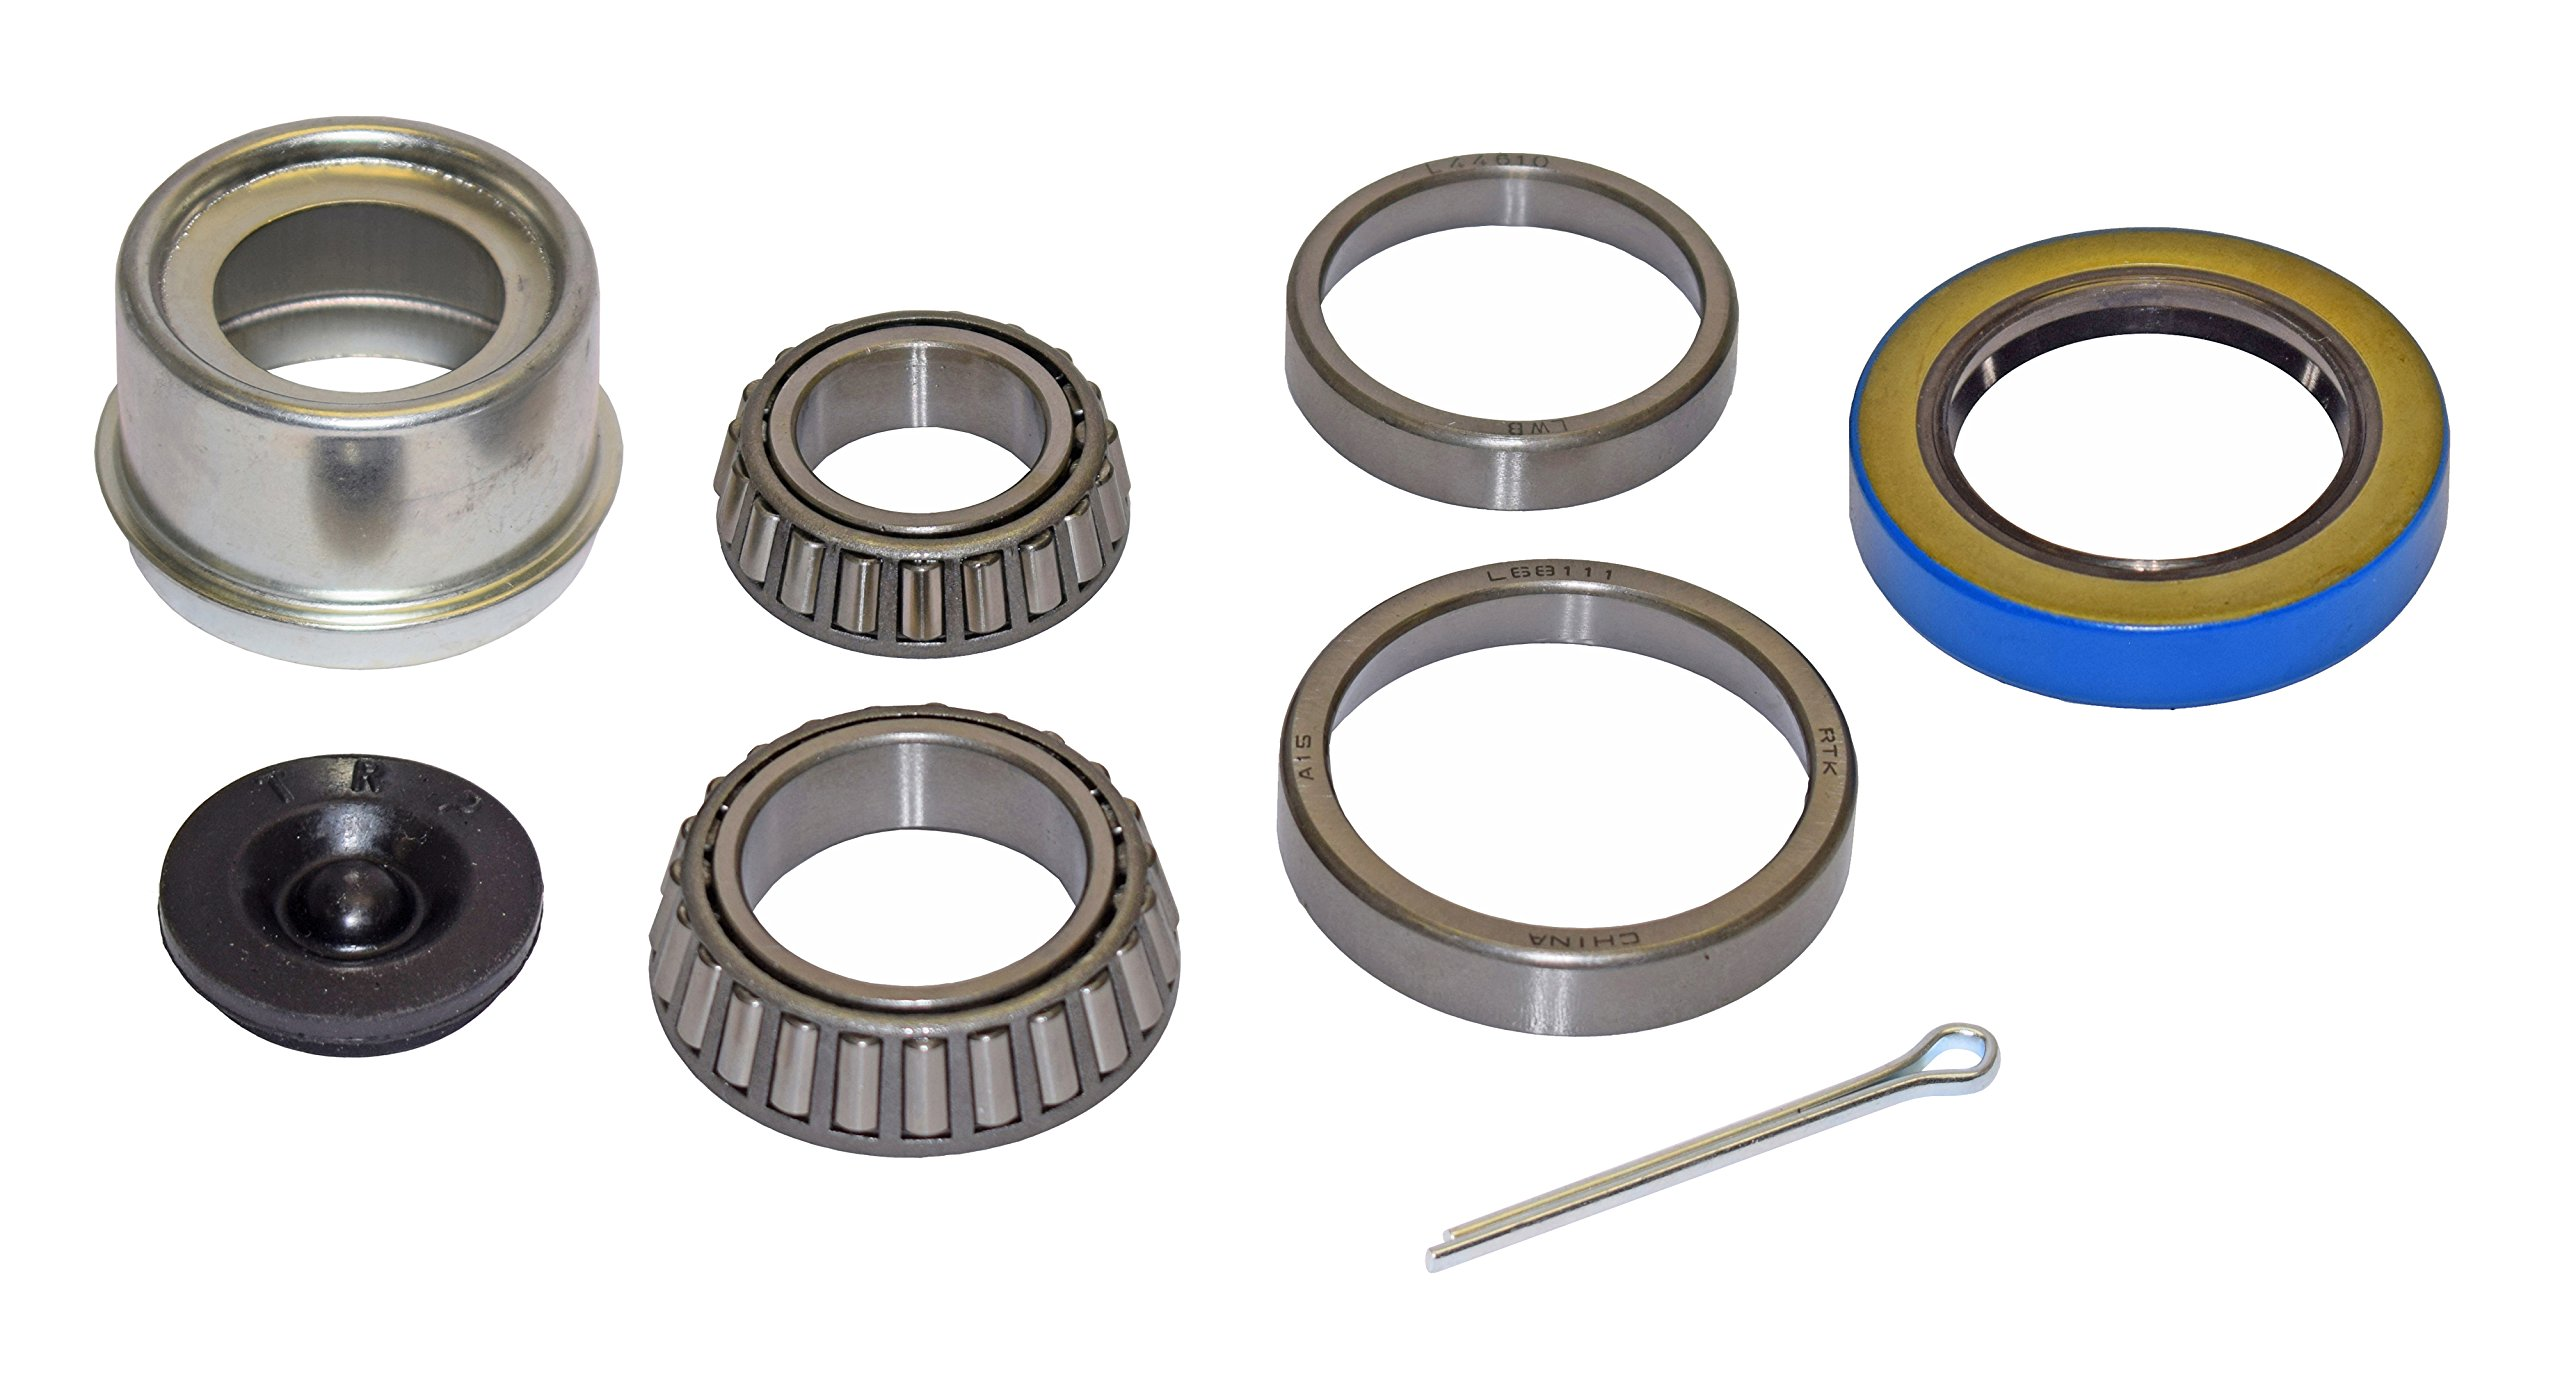 Rigid Hitch Trailer Bearing Repair Kit (280455-EZ) For 1-3/8 To 1-1/16 Inch Tapered Spindle - Includes E-Z Lube Cap With Plug